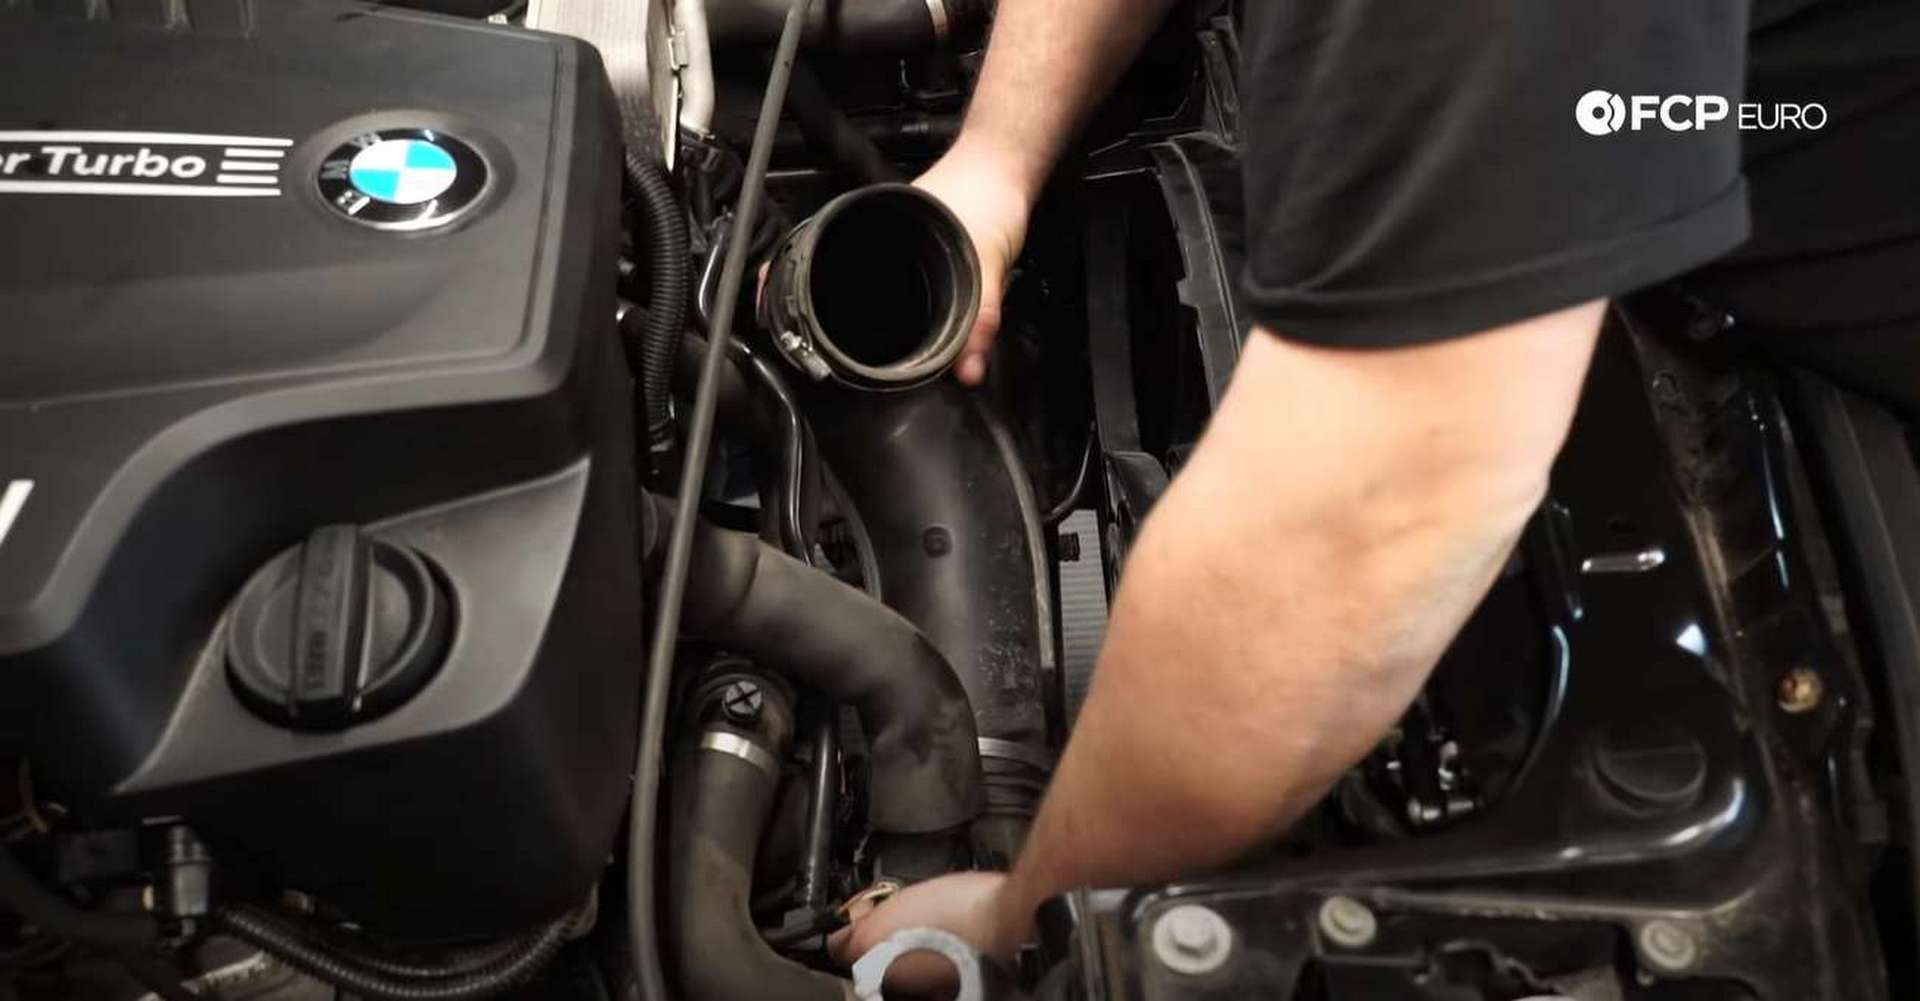 DIY BMW F30 Serpentine Belt Replacement fitting the intake silencer